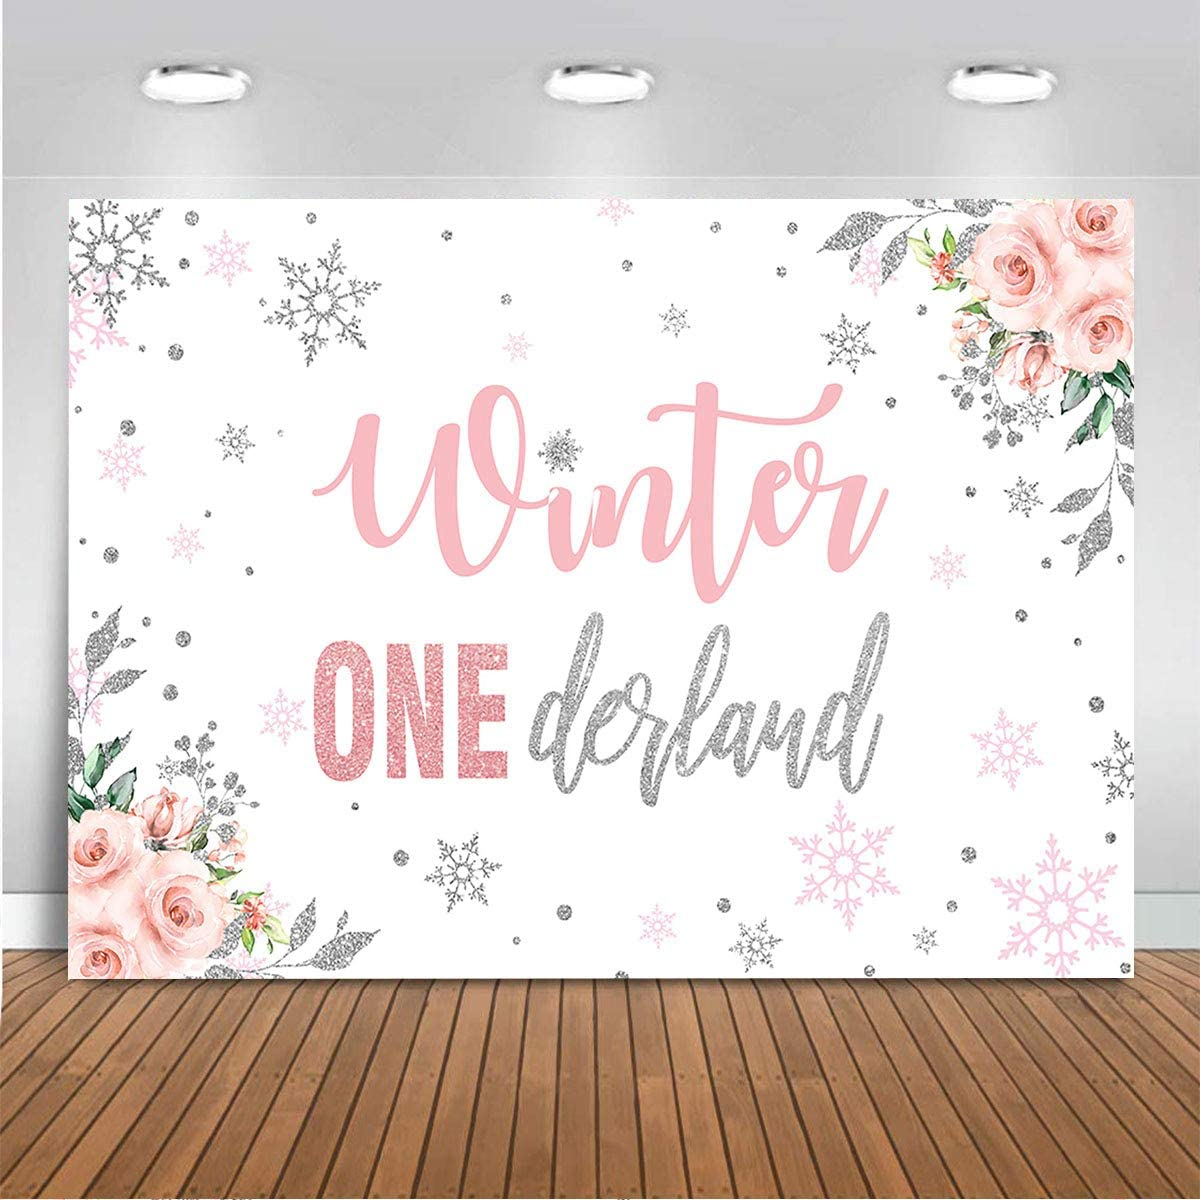 Mocsicka Winter Onederland Photography Backdrop for Girls Pink Winter Wonderland Snowflake Floral Birthday Party Decoration Princess 1st Birthday Cake Table Decor Banner Supplies (5x3ft)